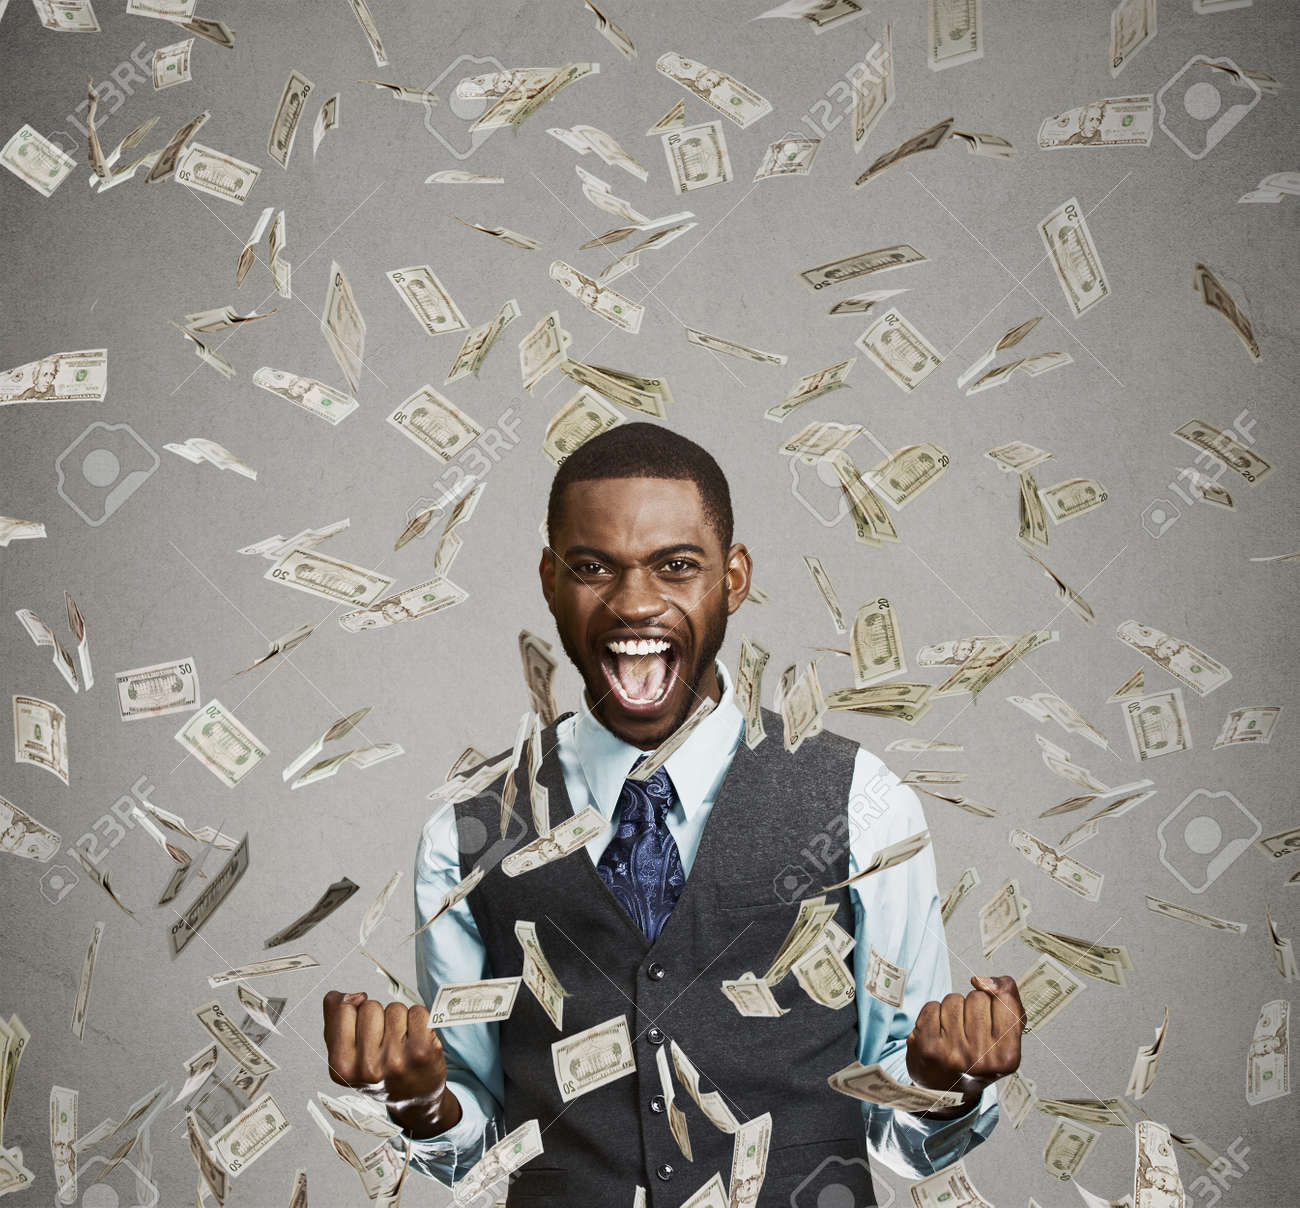 Portrait happy man exults pumping fists ecstatic celebrates success screaming under money rain falling down dollar bills banknotes isolated gray background with copy space. Financial freedom concept - 50995263